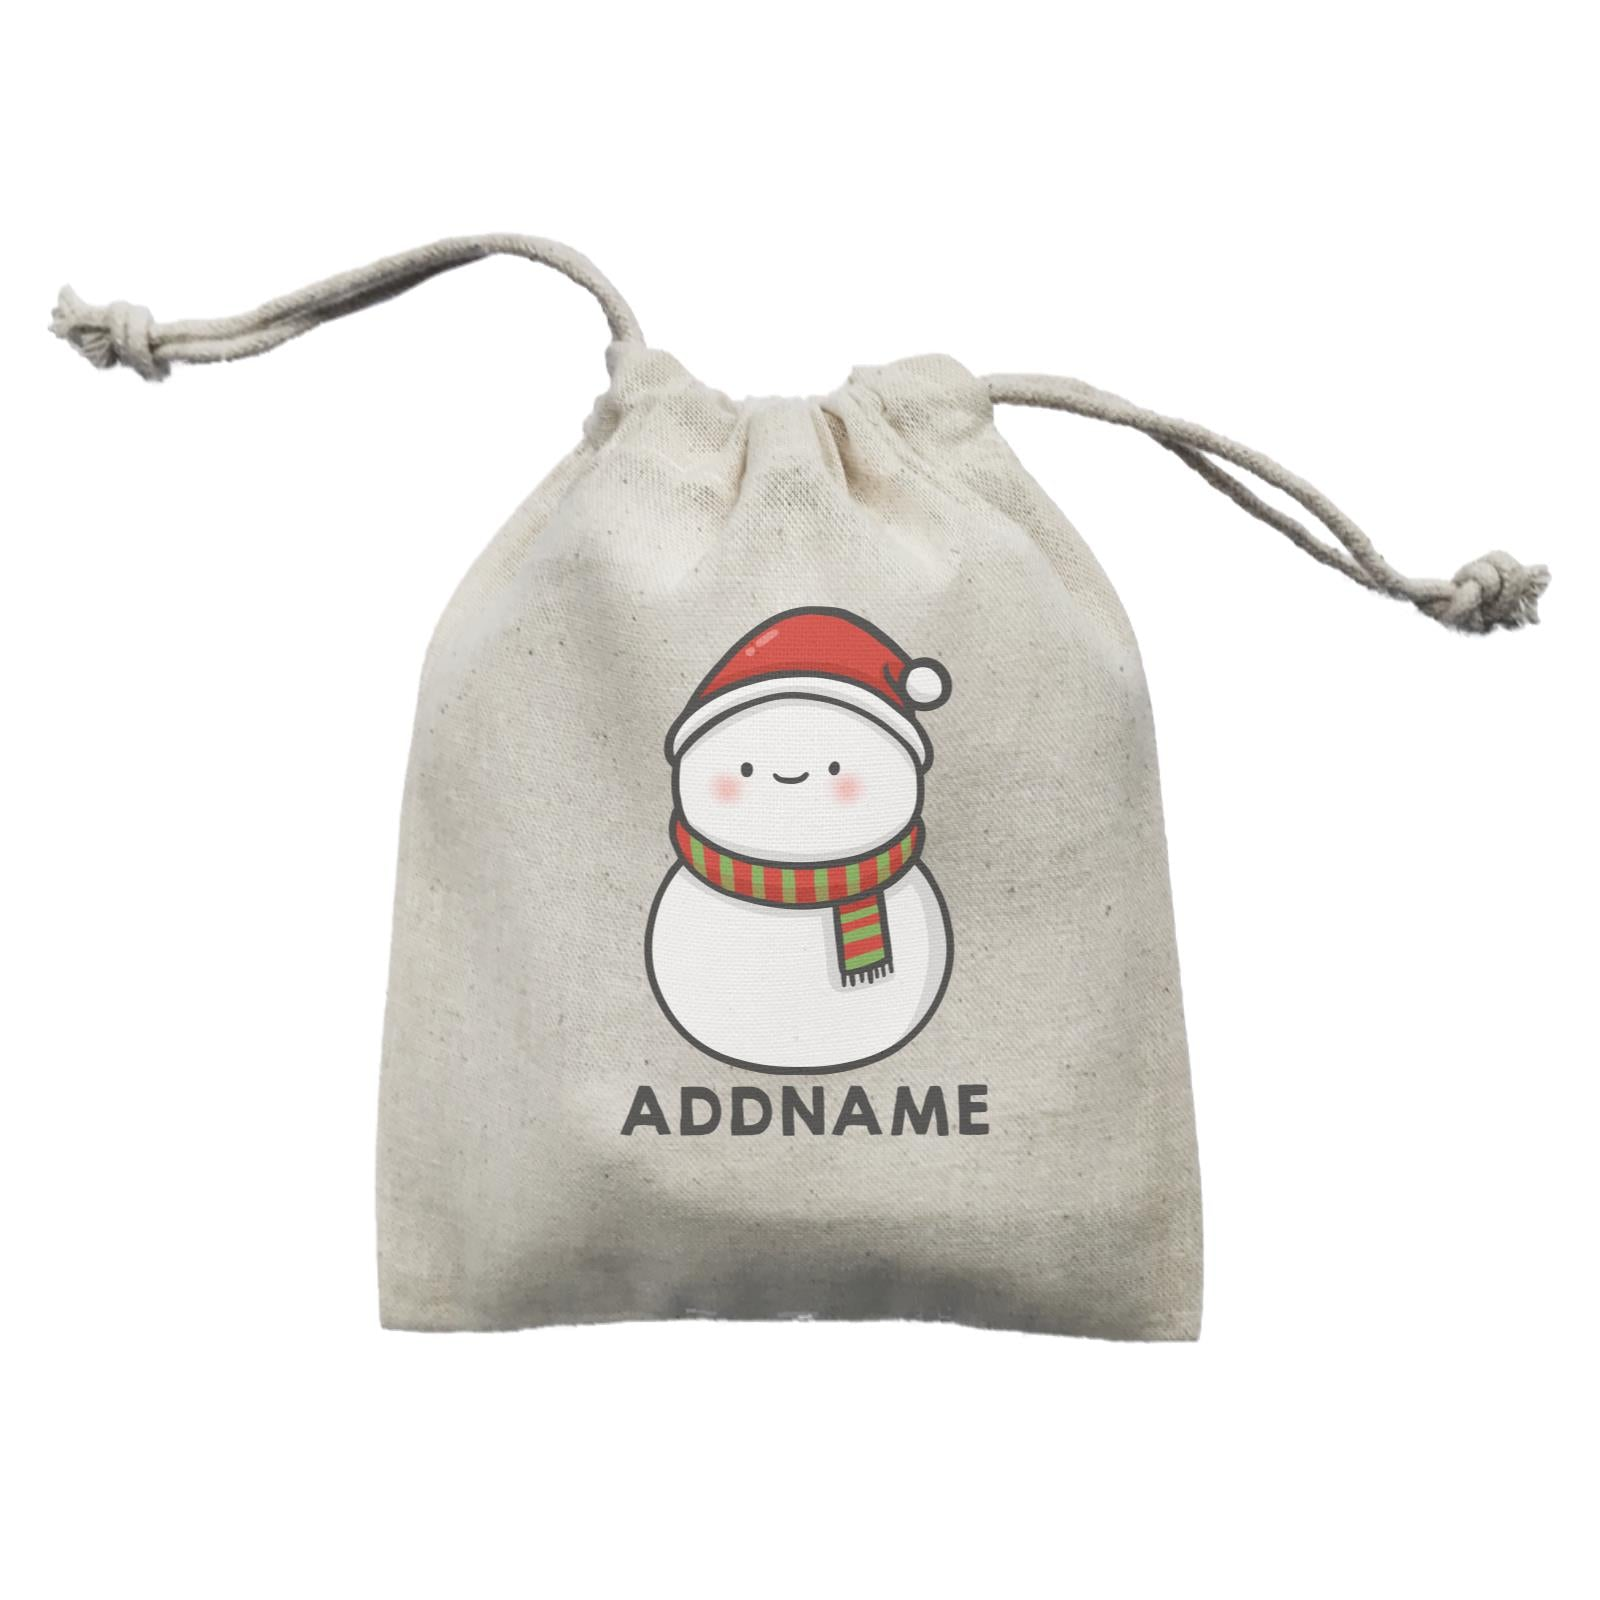 Xmas Cute Snowman Facing Foward Addname Mini Accessories Mini Pouch